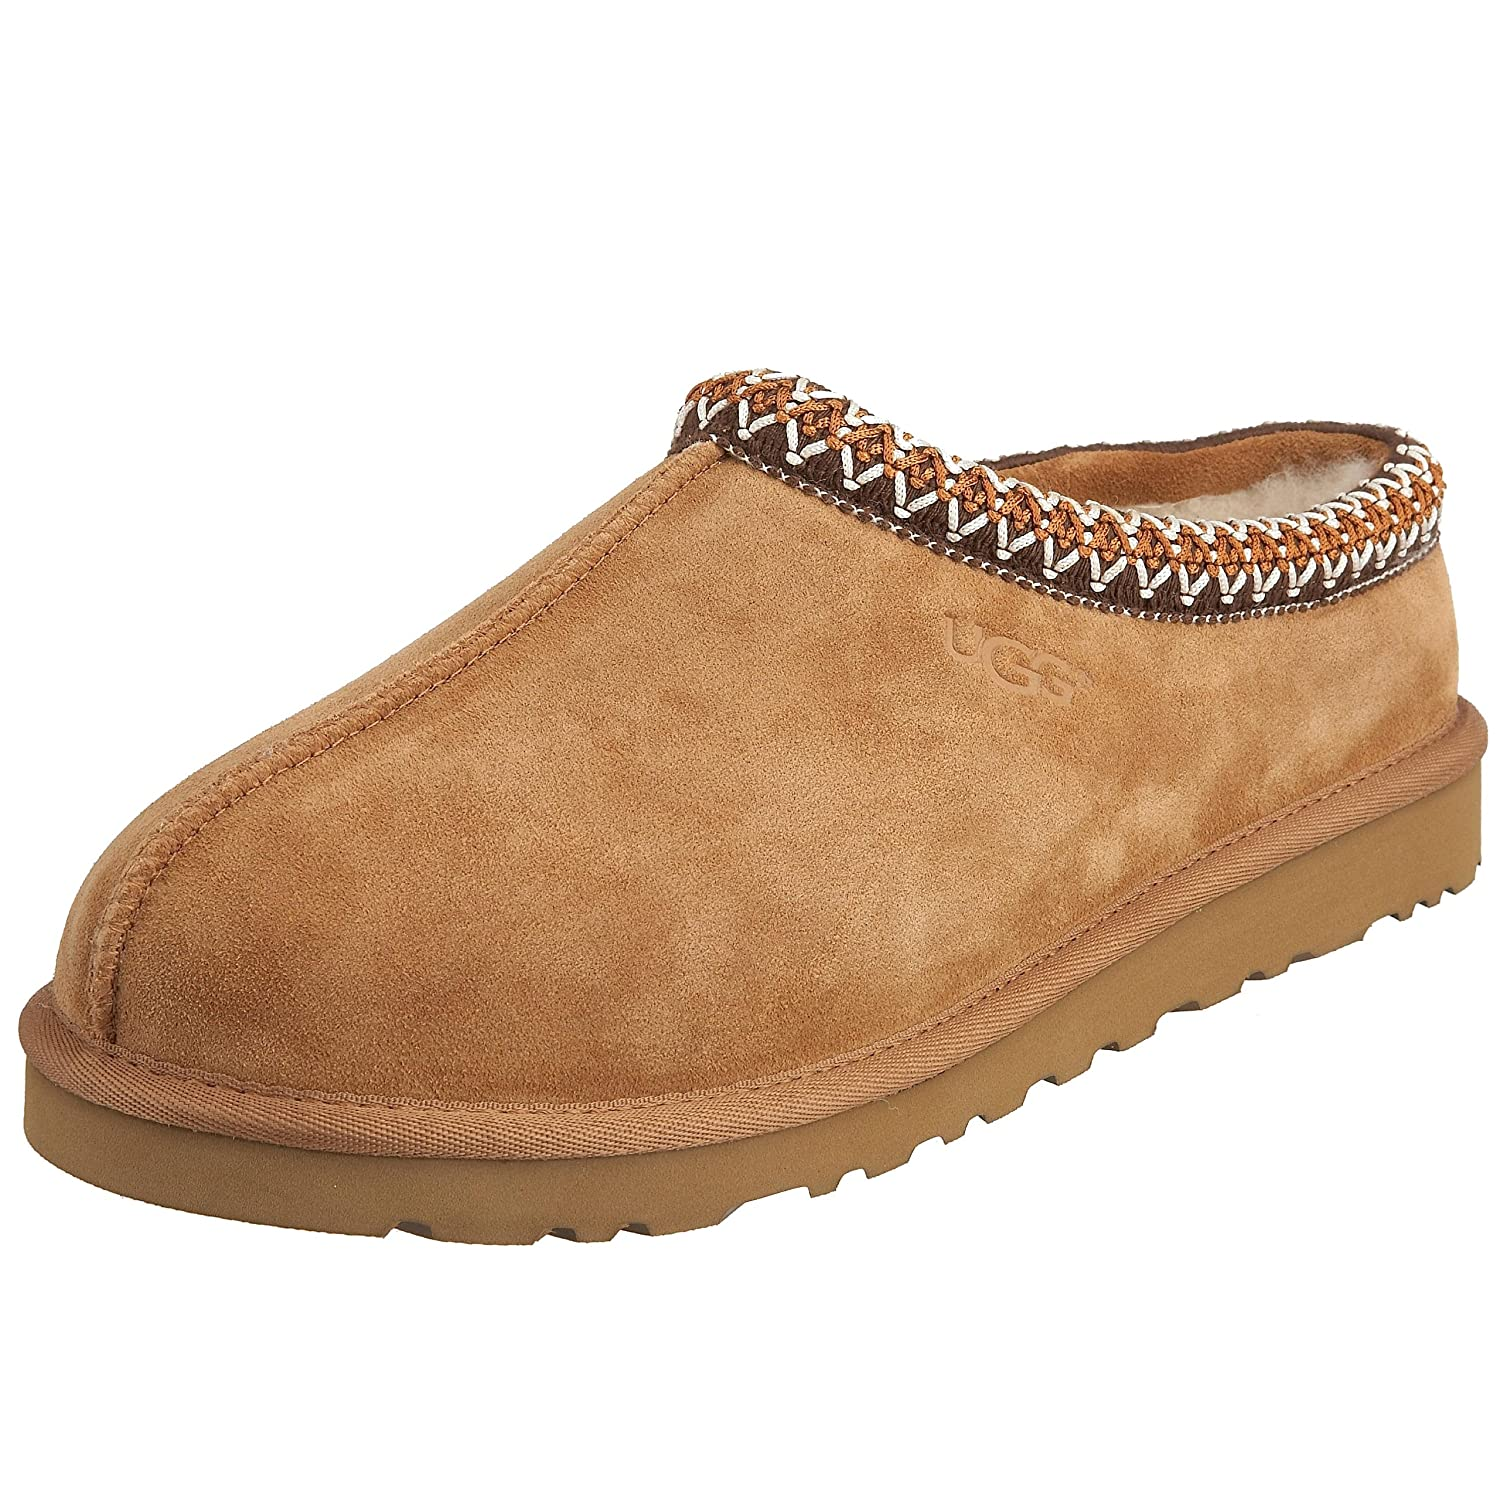 0aeff68ce927 UGG Men s Tasman Slipper  Amazon.ca  Shoes   Handbags